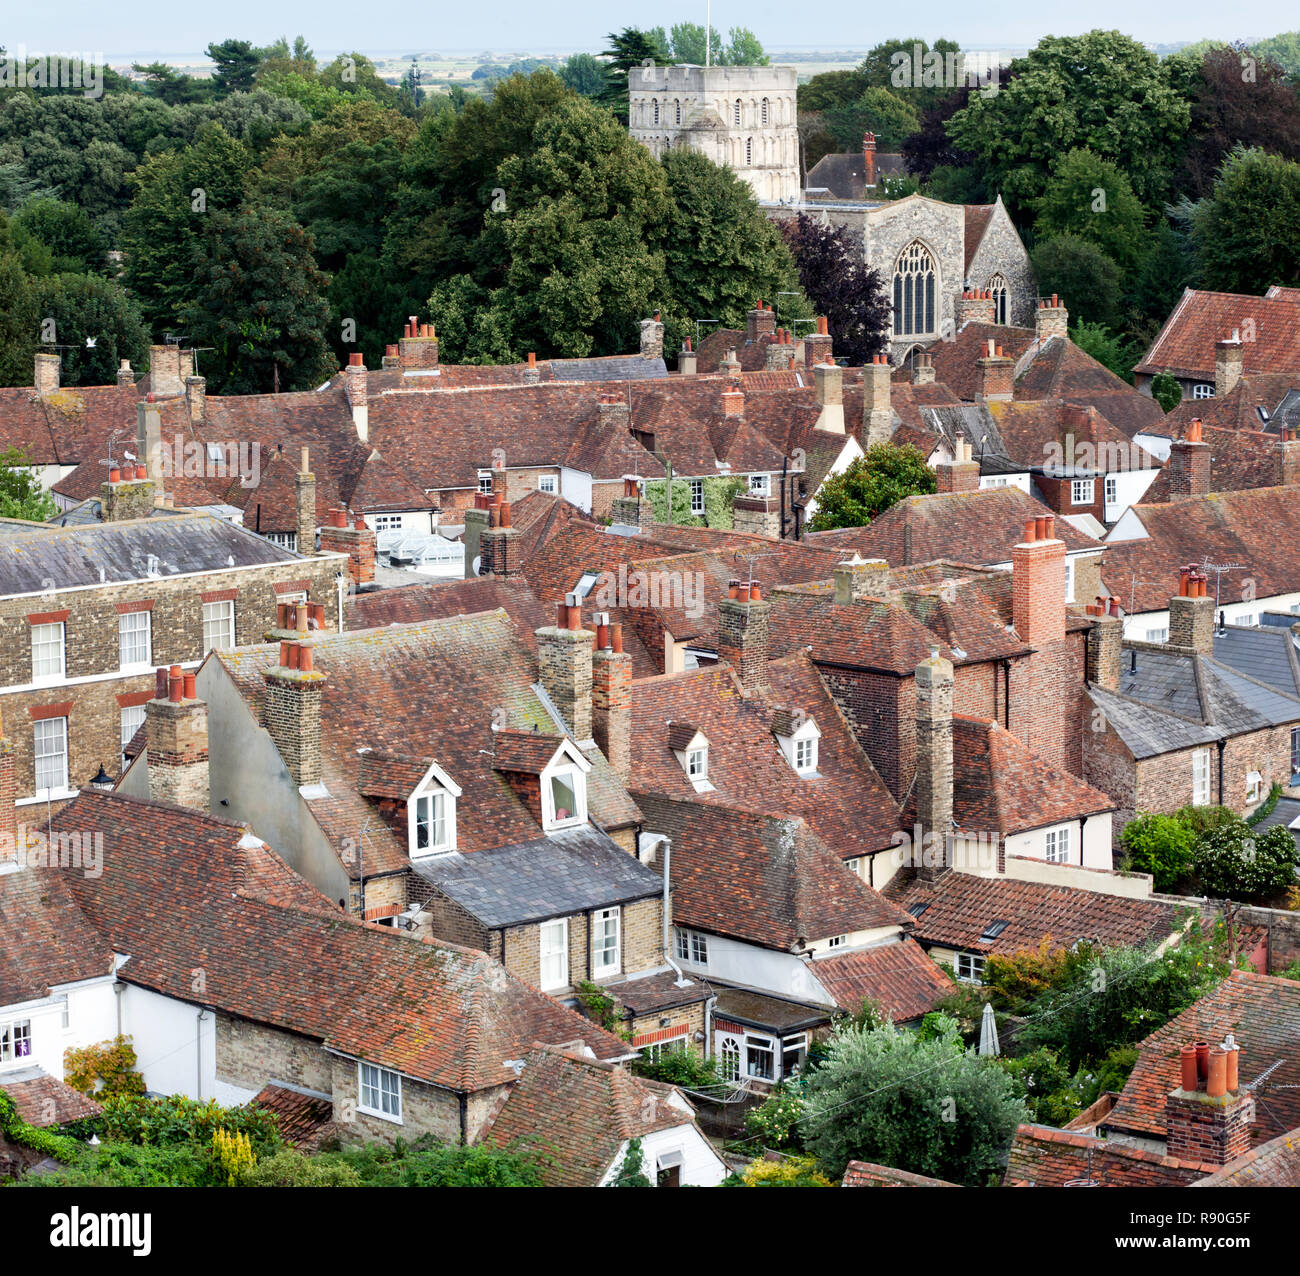 Aerial view looking towards  St Clement's Church, taken from the tower of St Peters Church, Sandwich, Kent Stock Photo